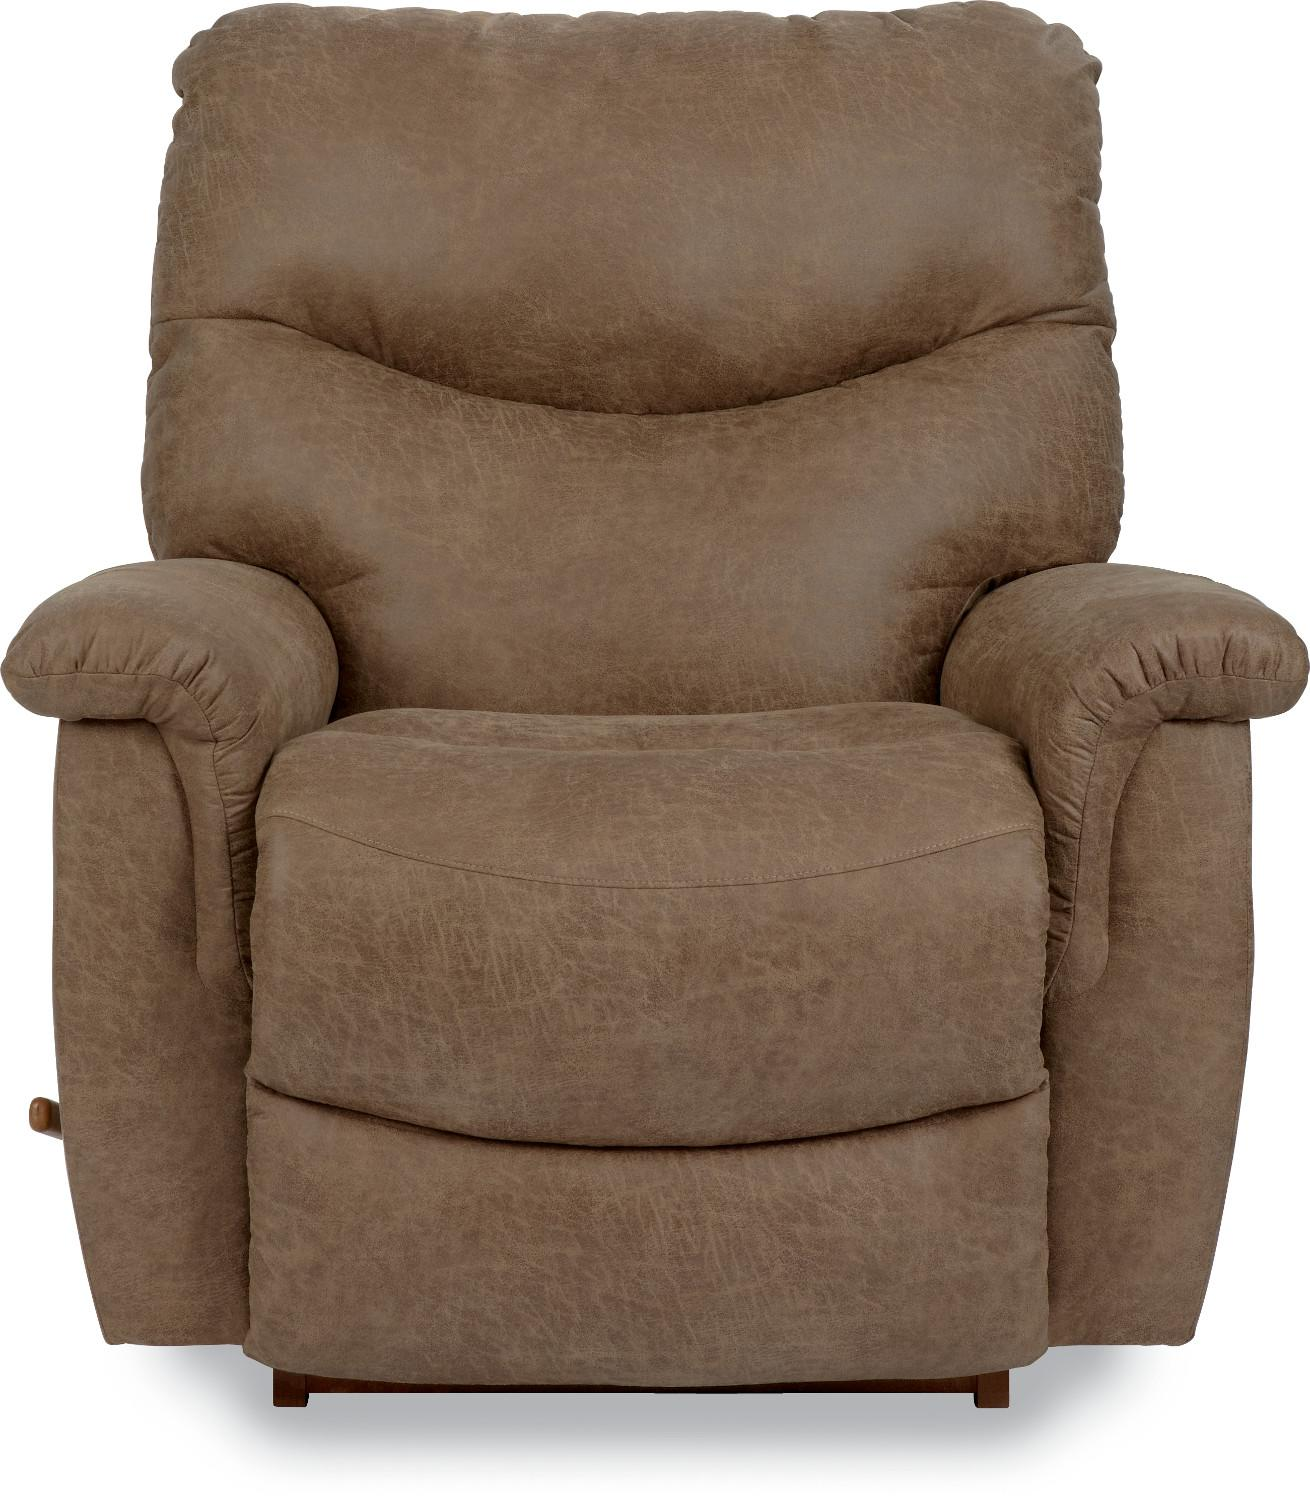 James RECLINA-ROCKER® Recliner by La-Z-Boy at VanDrie Home Furnishings